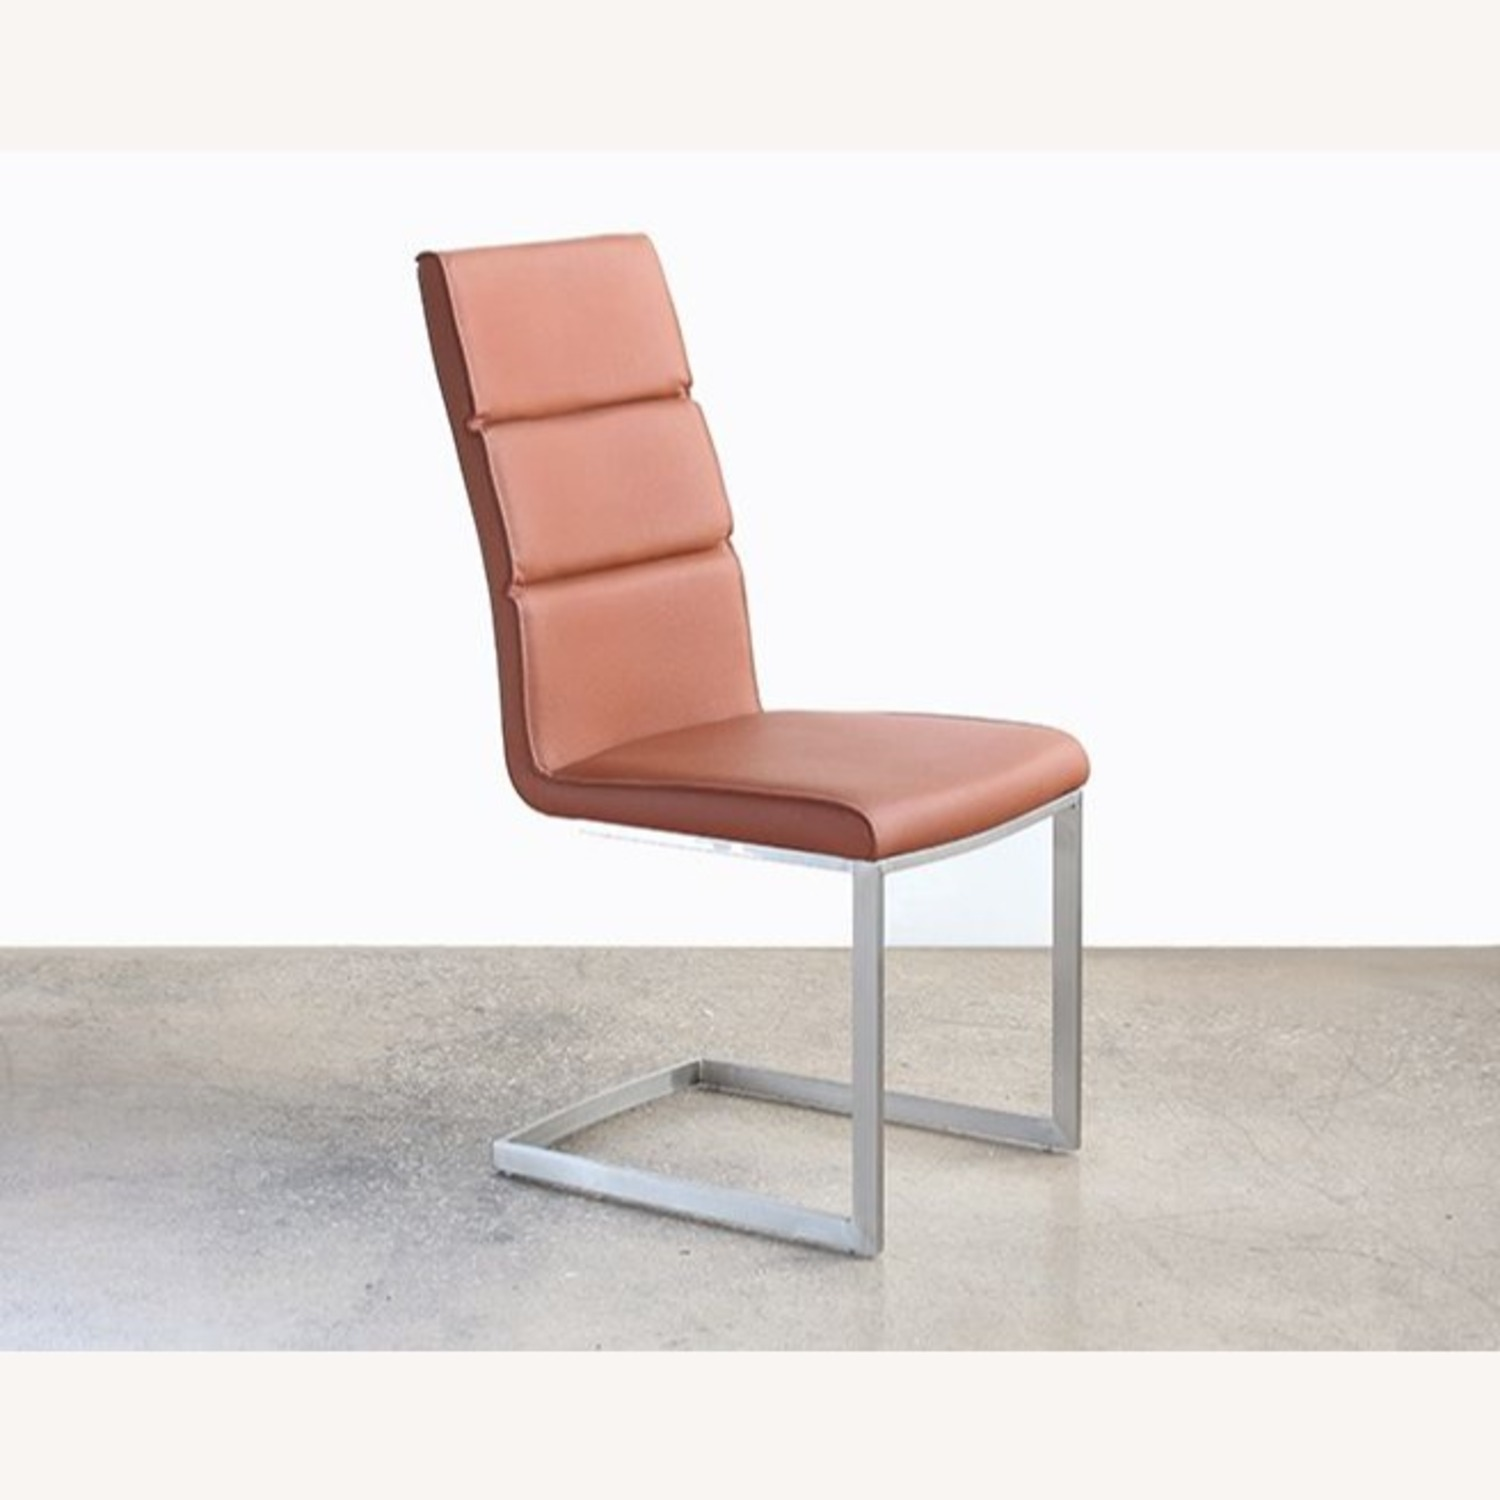 Tan Leatherette Dining Chair Stainless Steel Frame - image-0